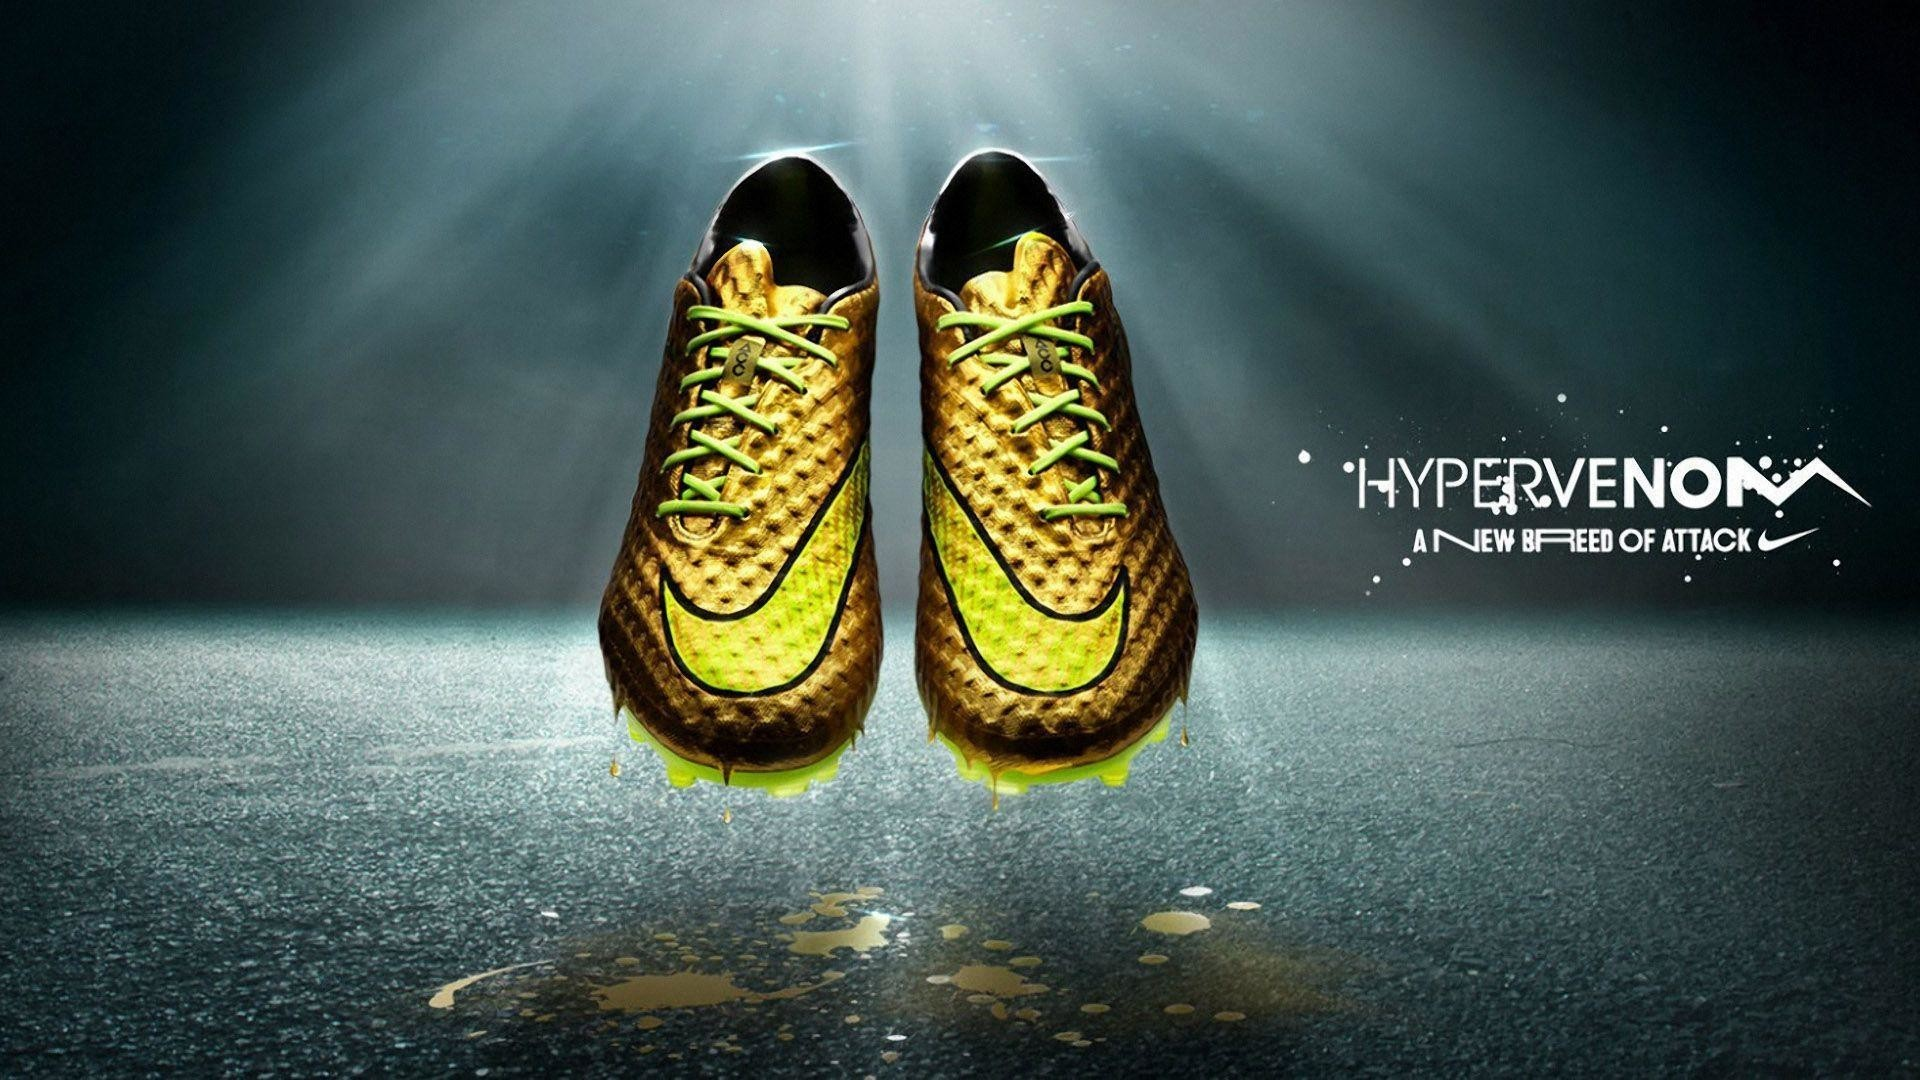 1920x1080  Nike Football Laser 2015 Wallpapers - Wallpaper Cave